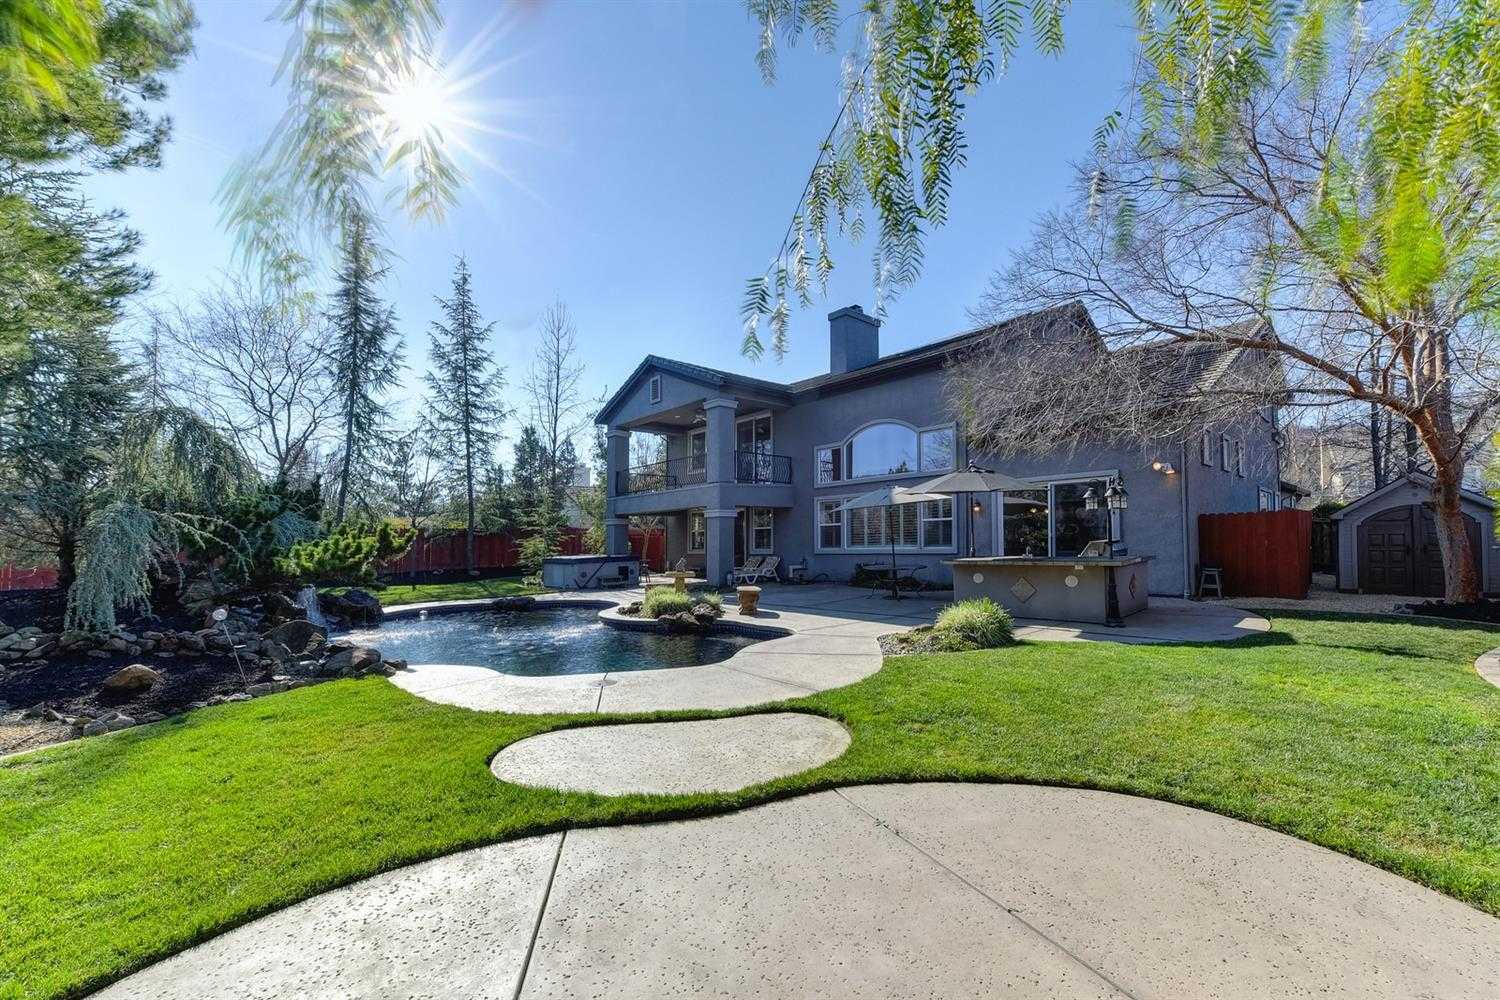 $949,000 - 4Br/4Ba -  for Sale in Empire Ranch, Folsom